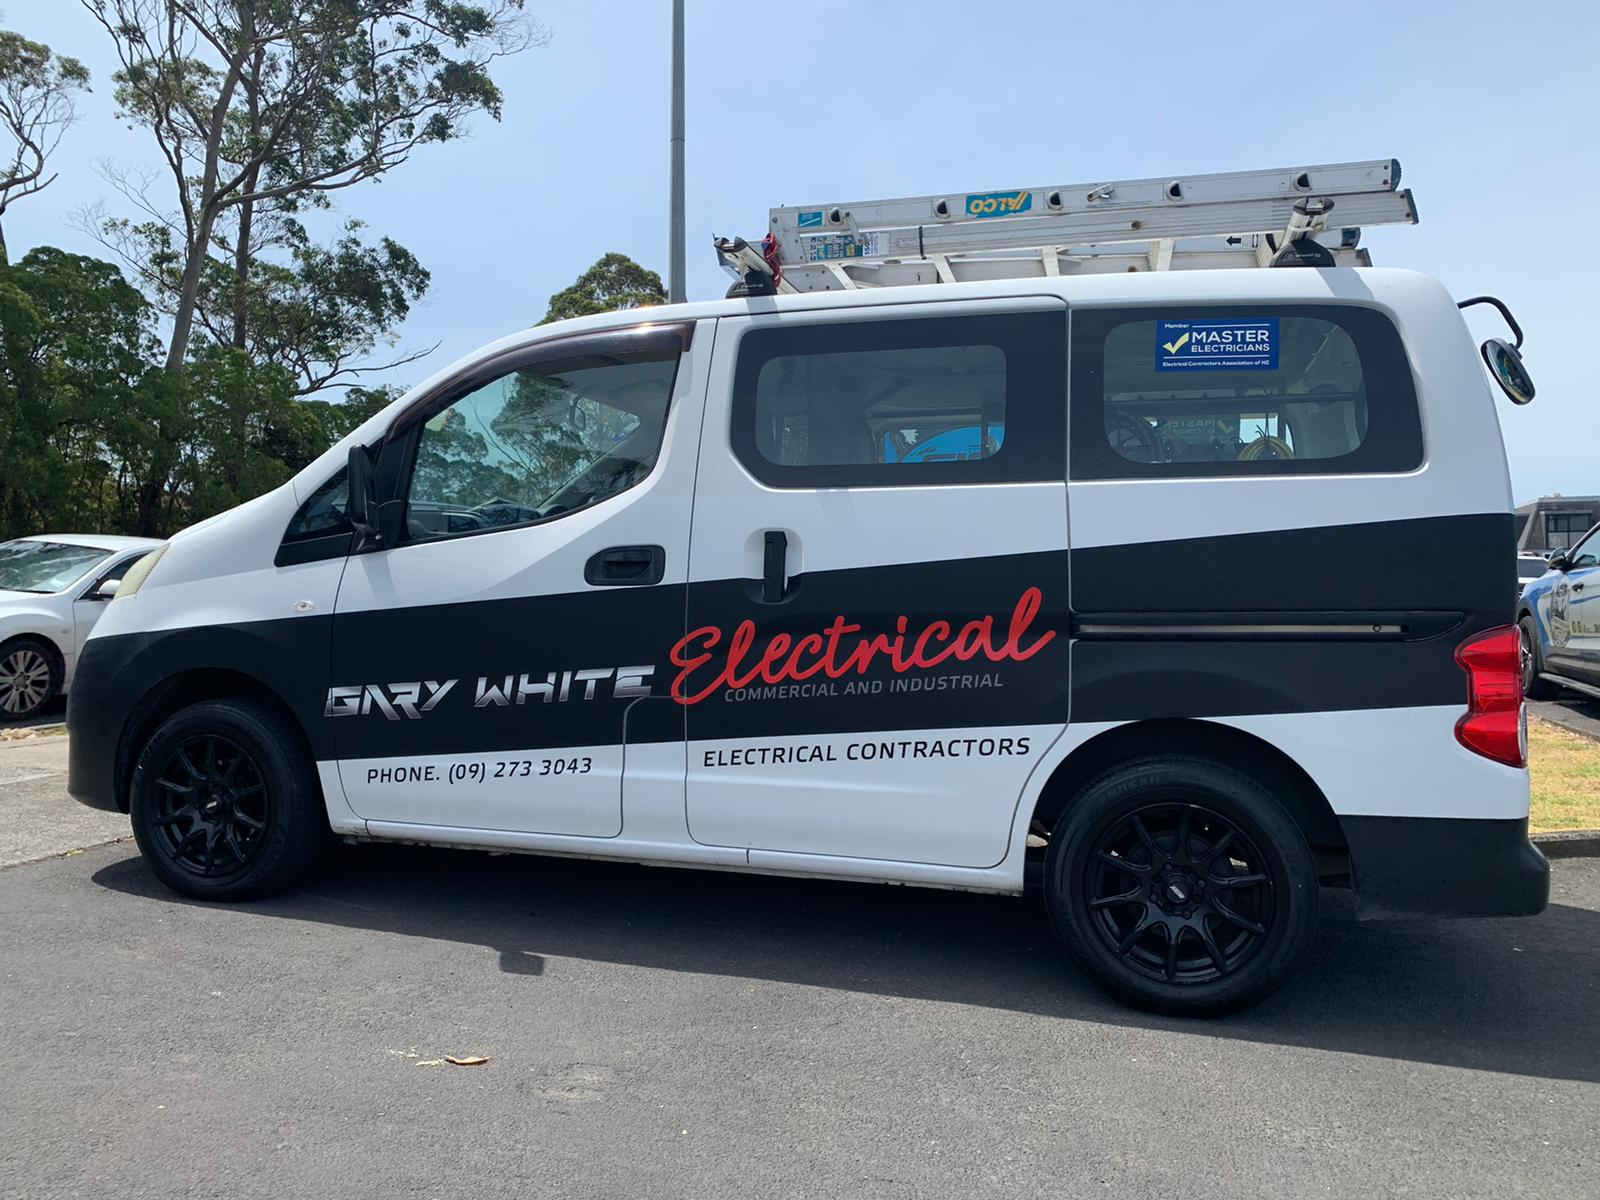 Gary White Electrical Van